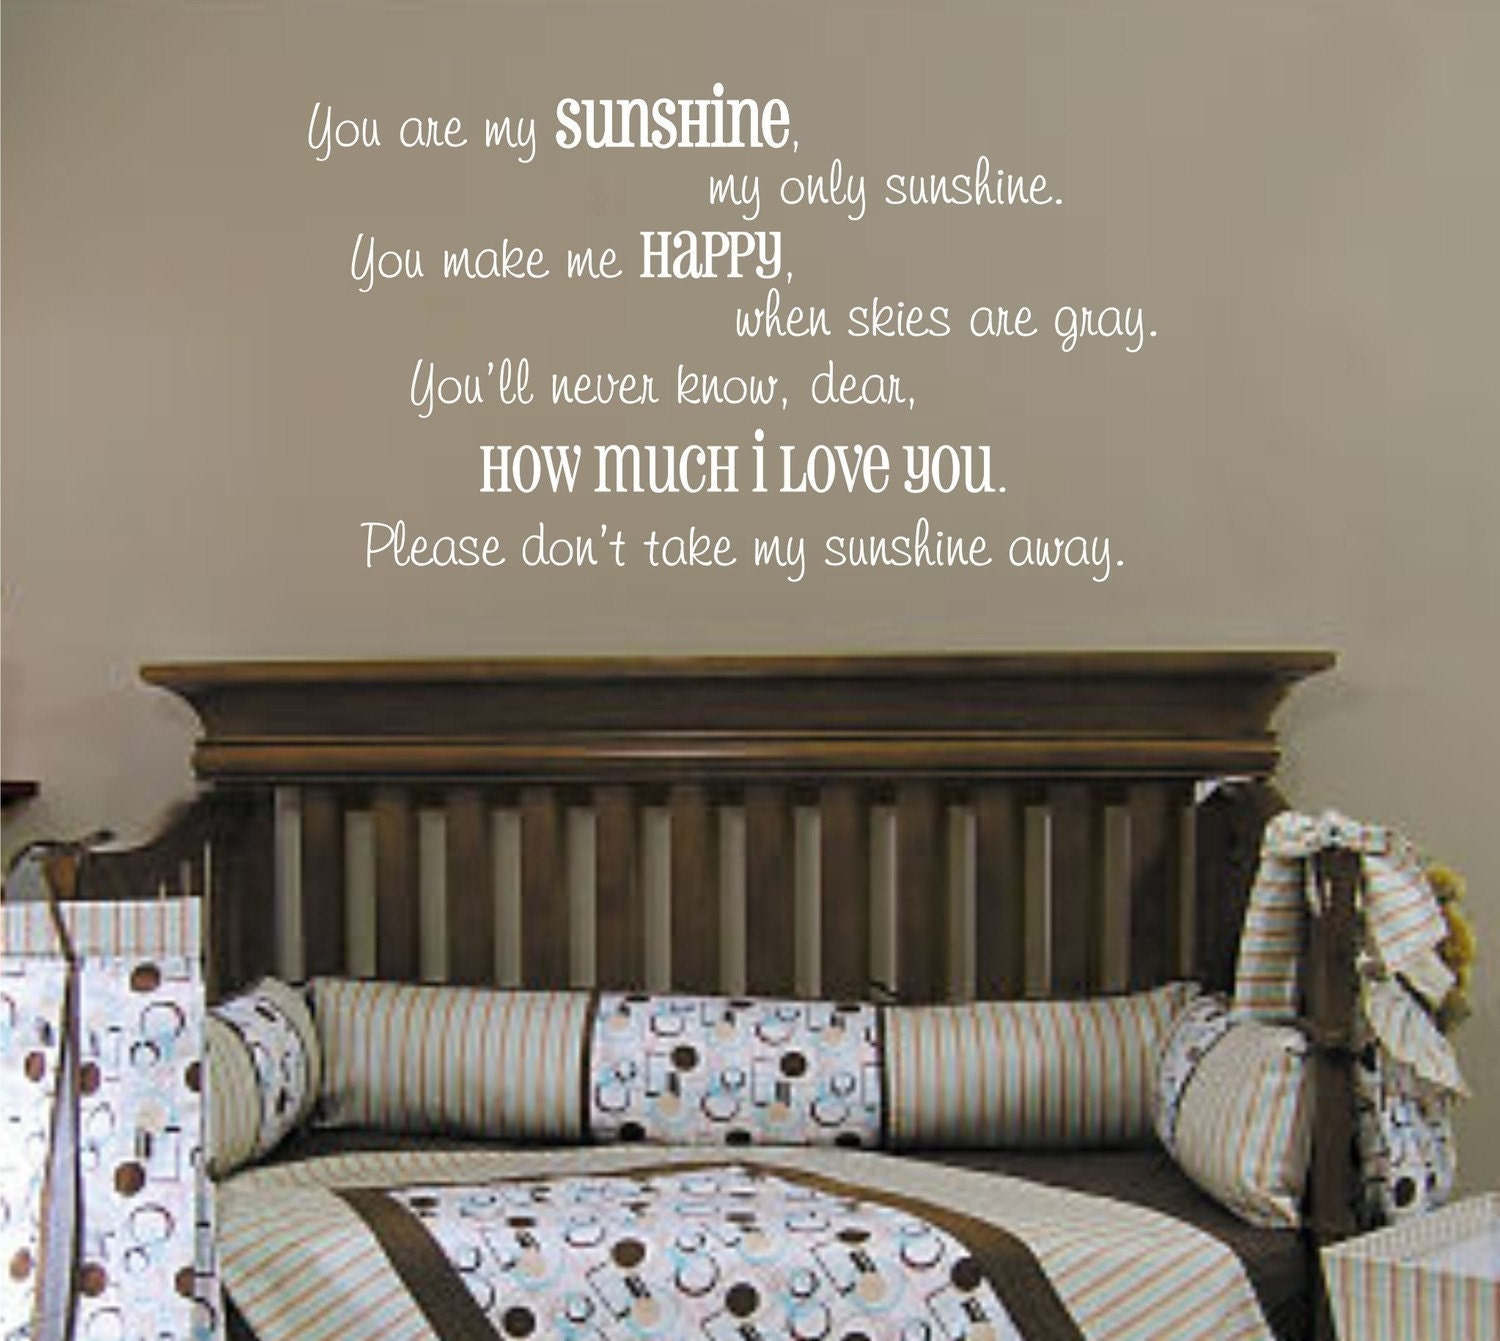 ... You are my sunshine vinyl wall decal (k-030). 🔎zoom